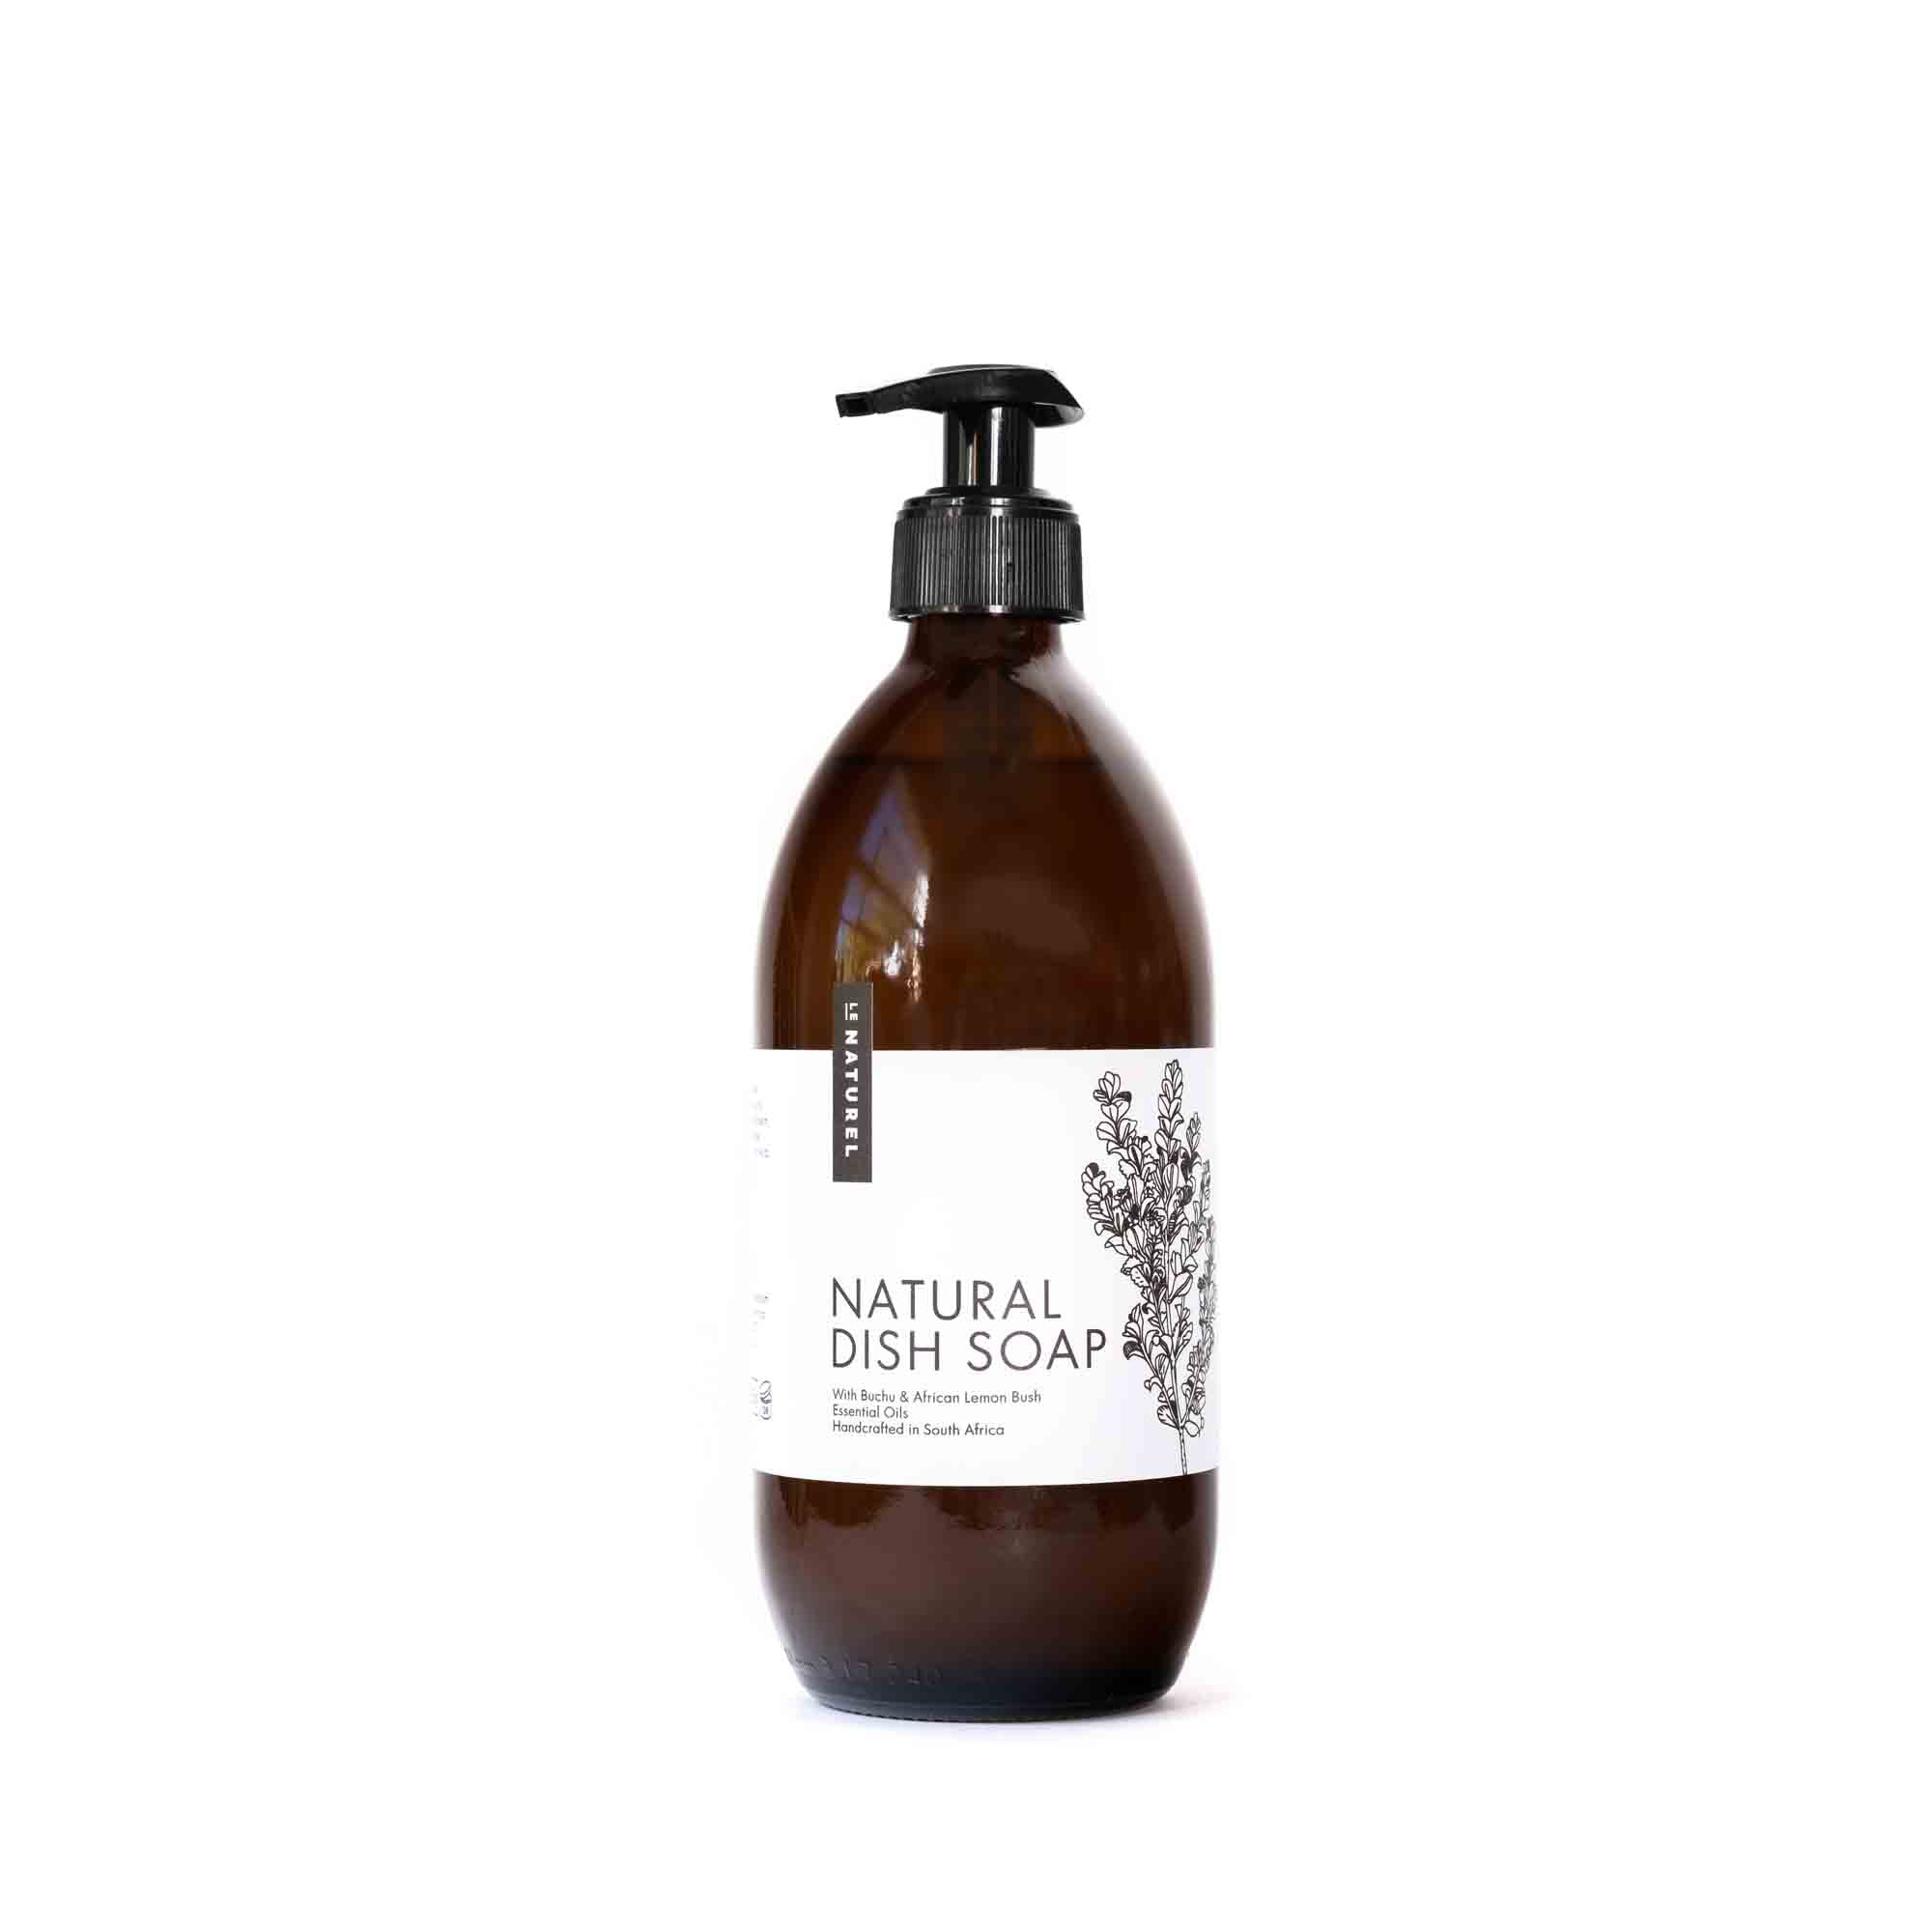 Natural Dish Soap (500ml) - Le Naturel